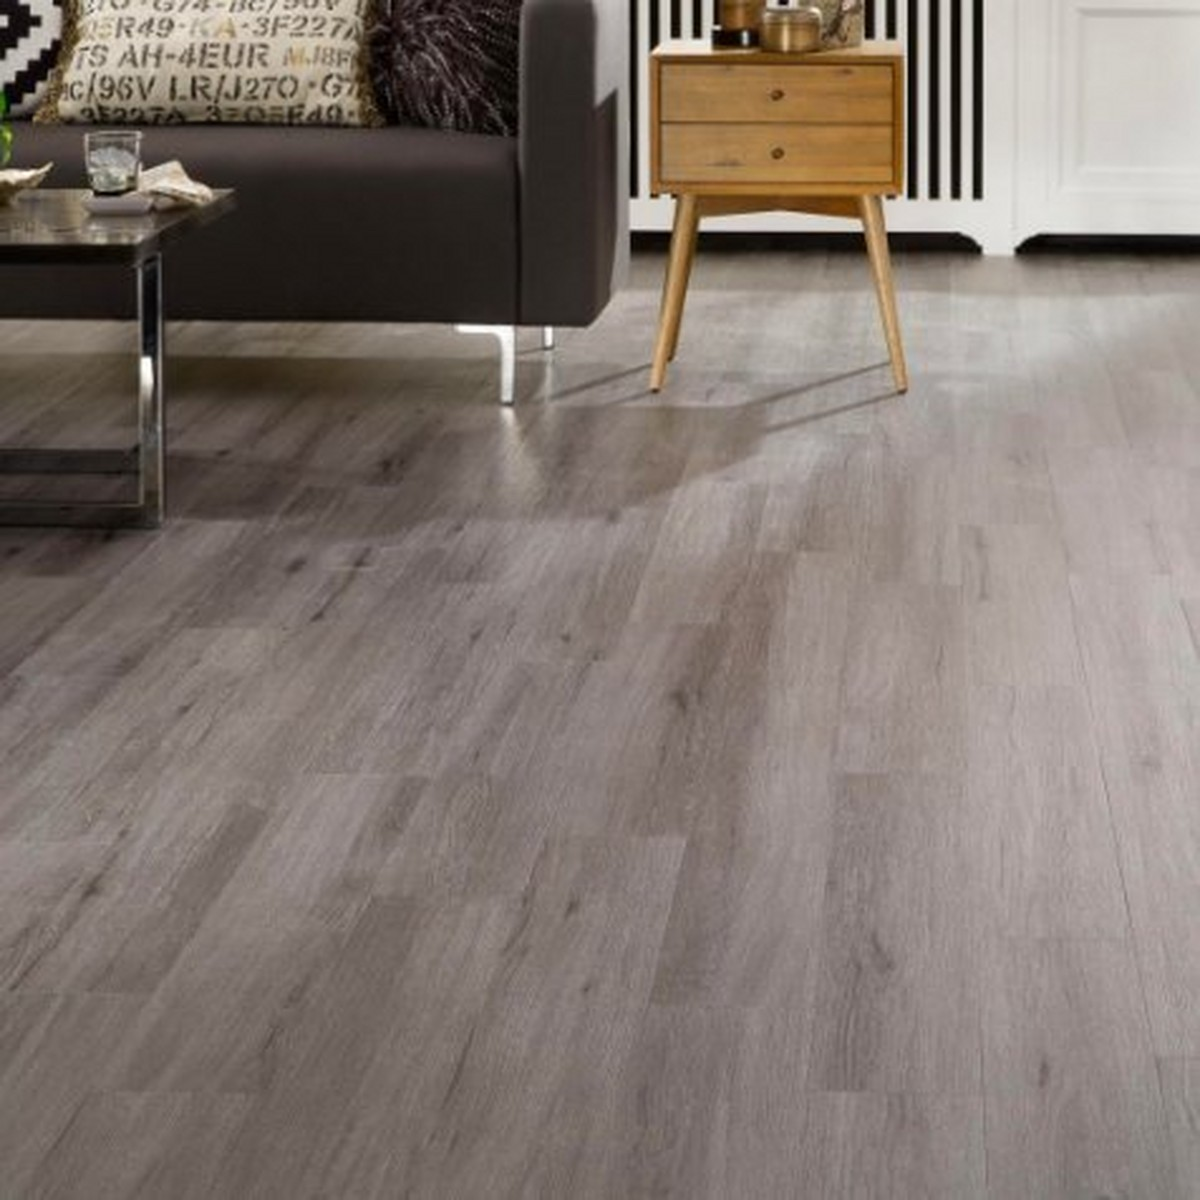 Luxury vinyl plank tile